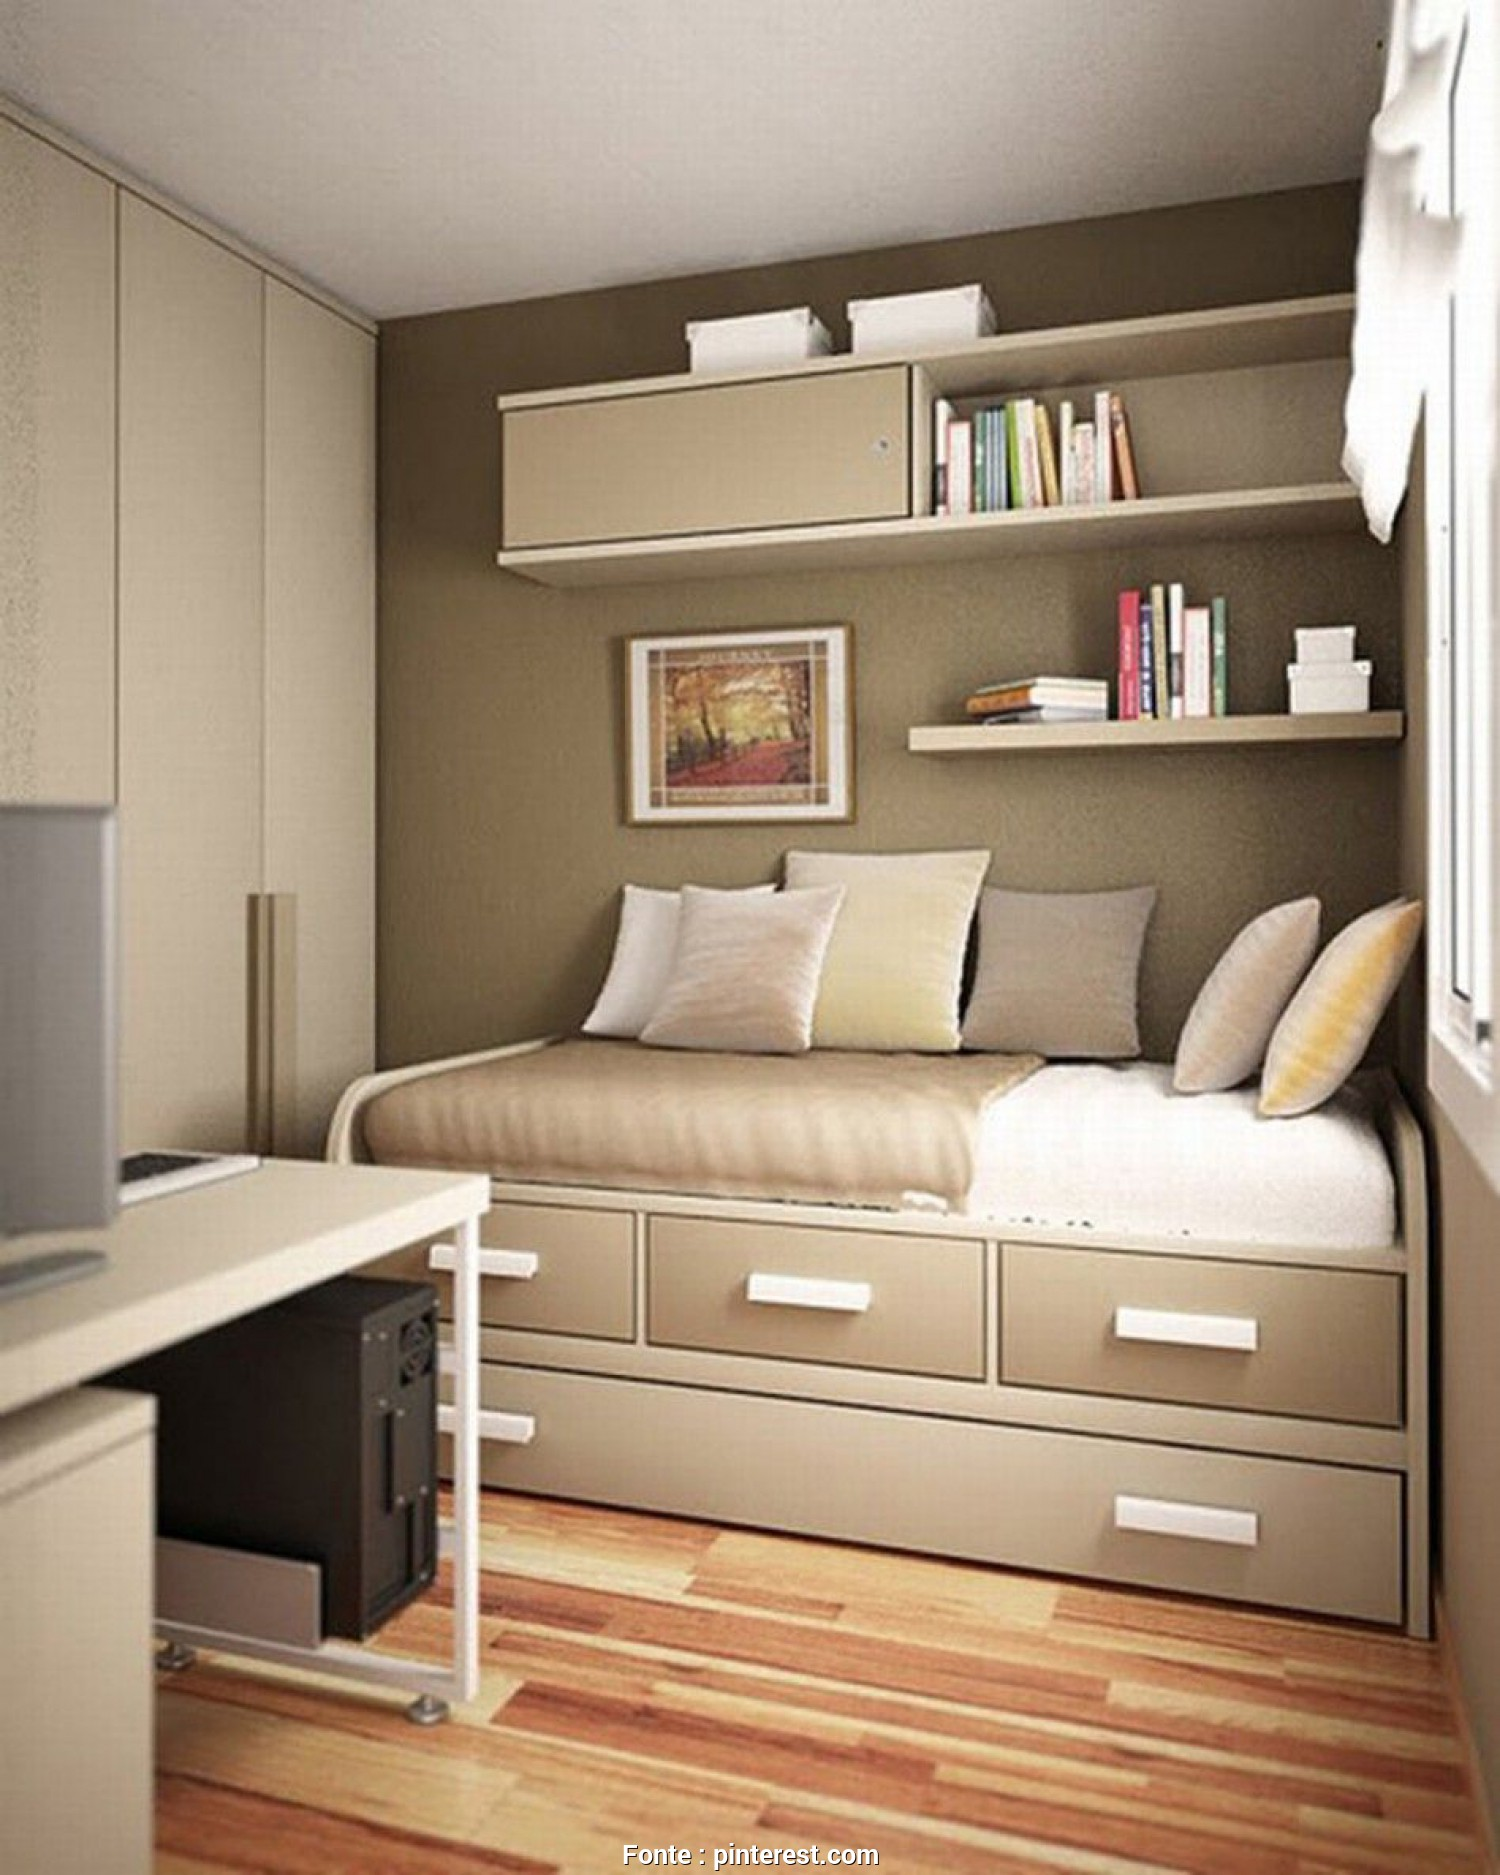 Ikea Vilasund Pdf, Modesto Ikea Bedroom Ideas, Small Rooms, Google Search, Small Bedroom